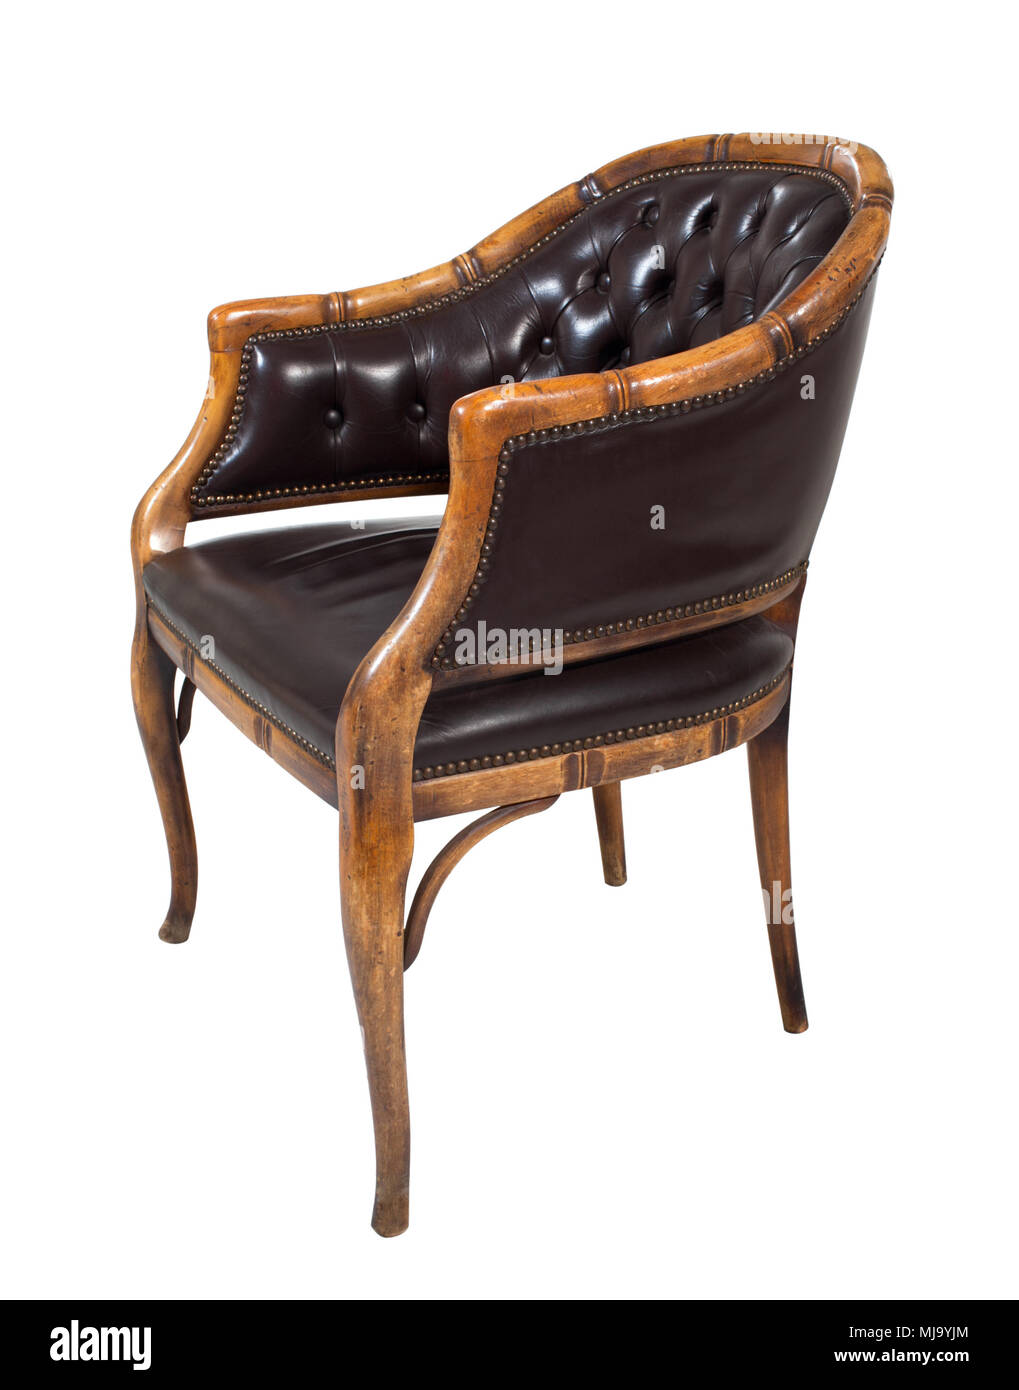 Elegance armchair isolated on white background. - Stock Image